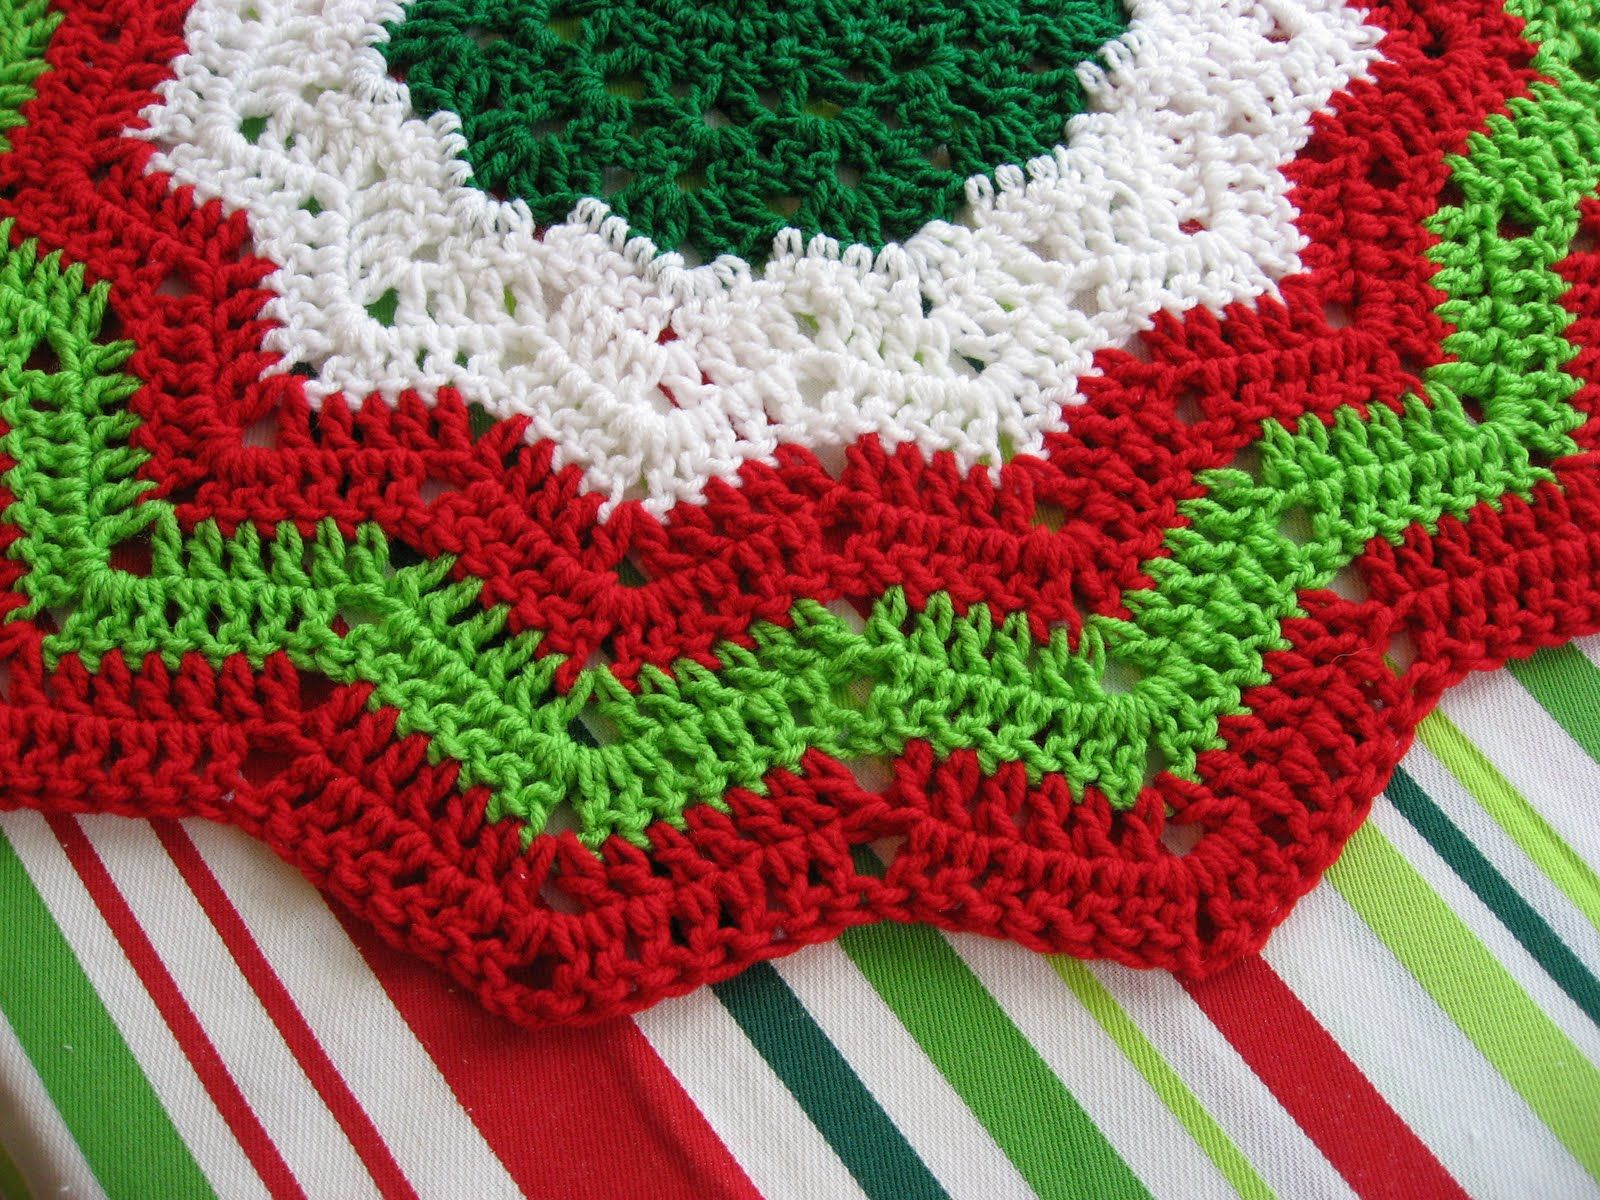 Caron crochet tree skirt pattern glitter christmas